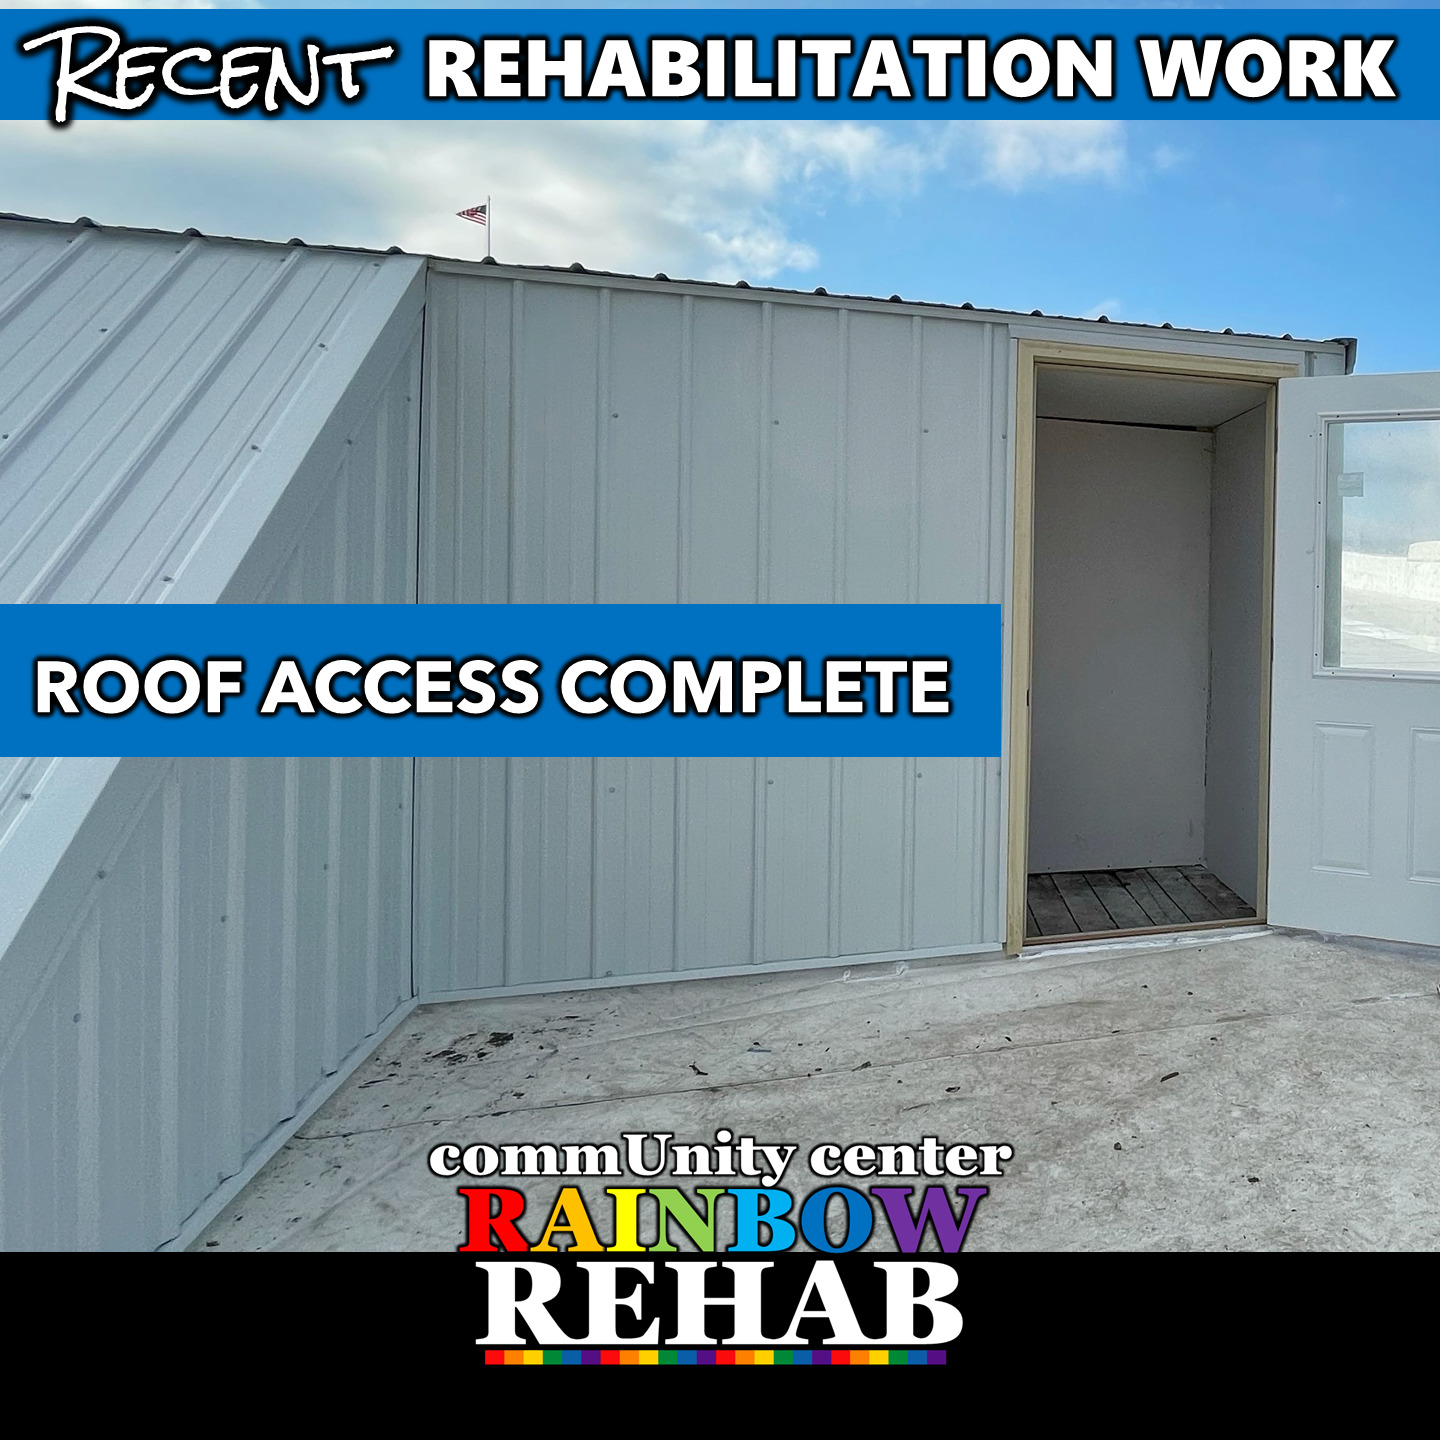 Update - Roof Access Complete